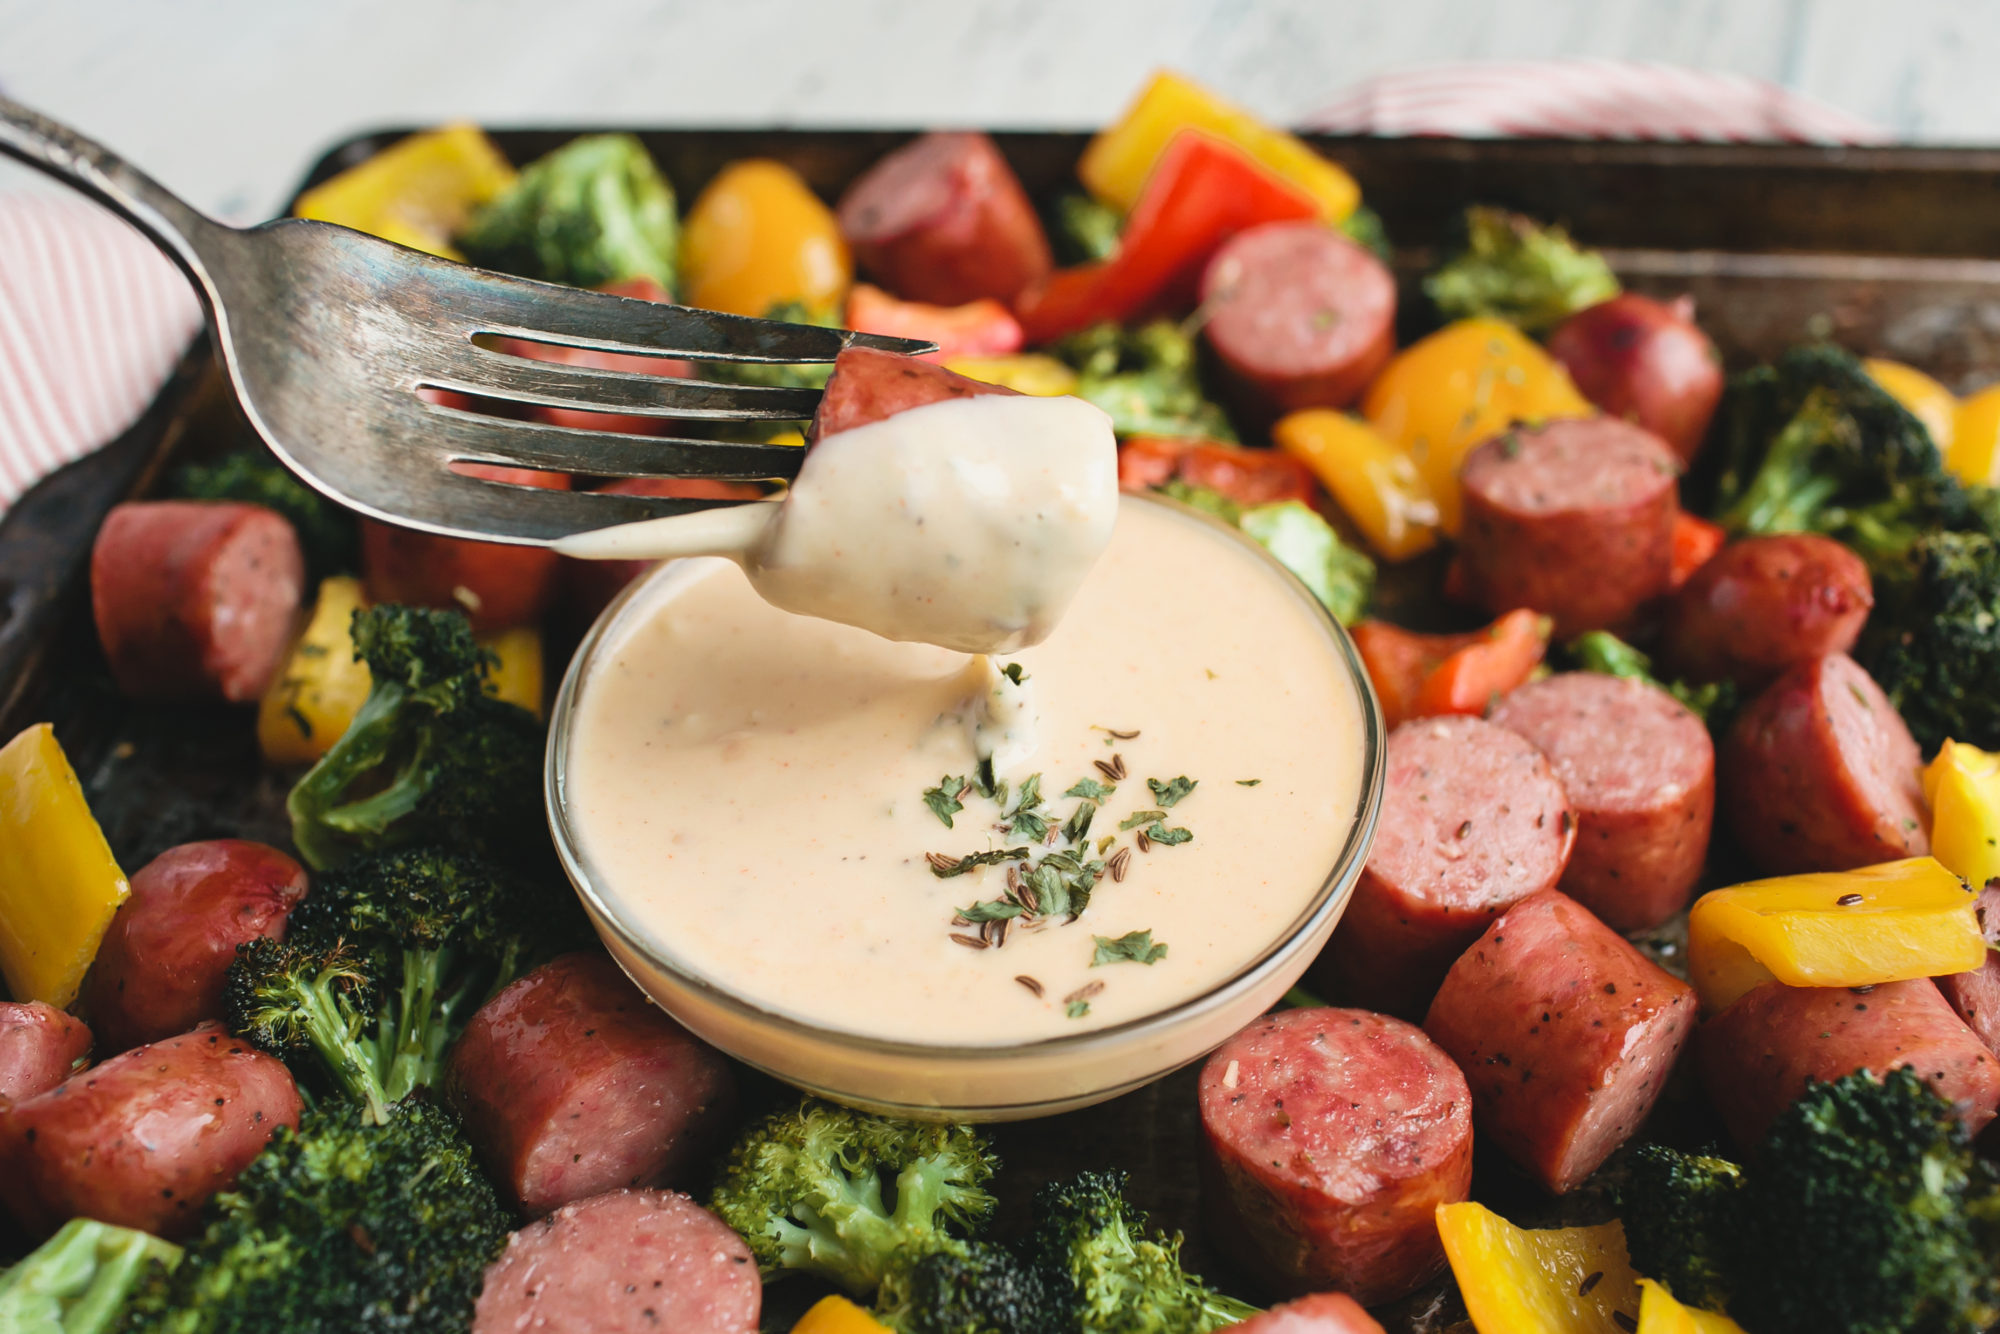 Smoked Gouda Cheese Sauce - Roth Cheese